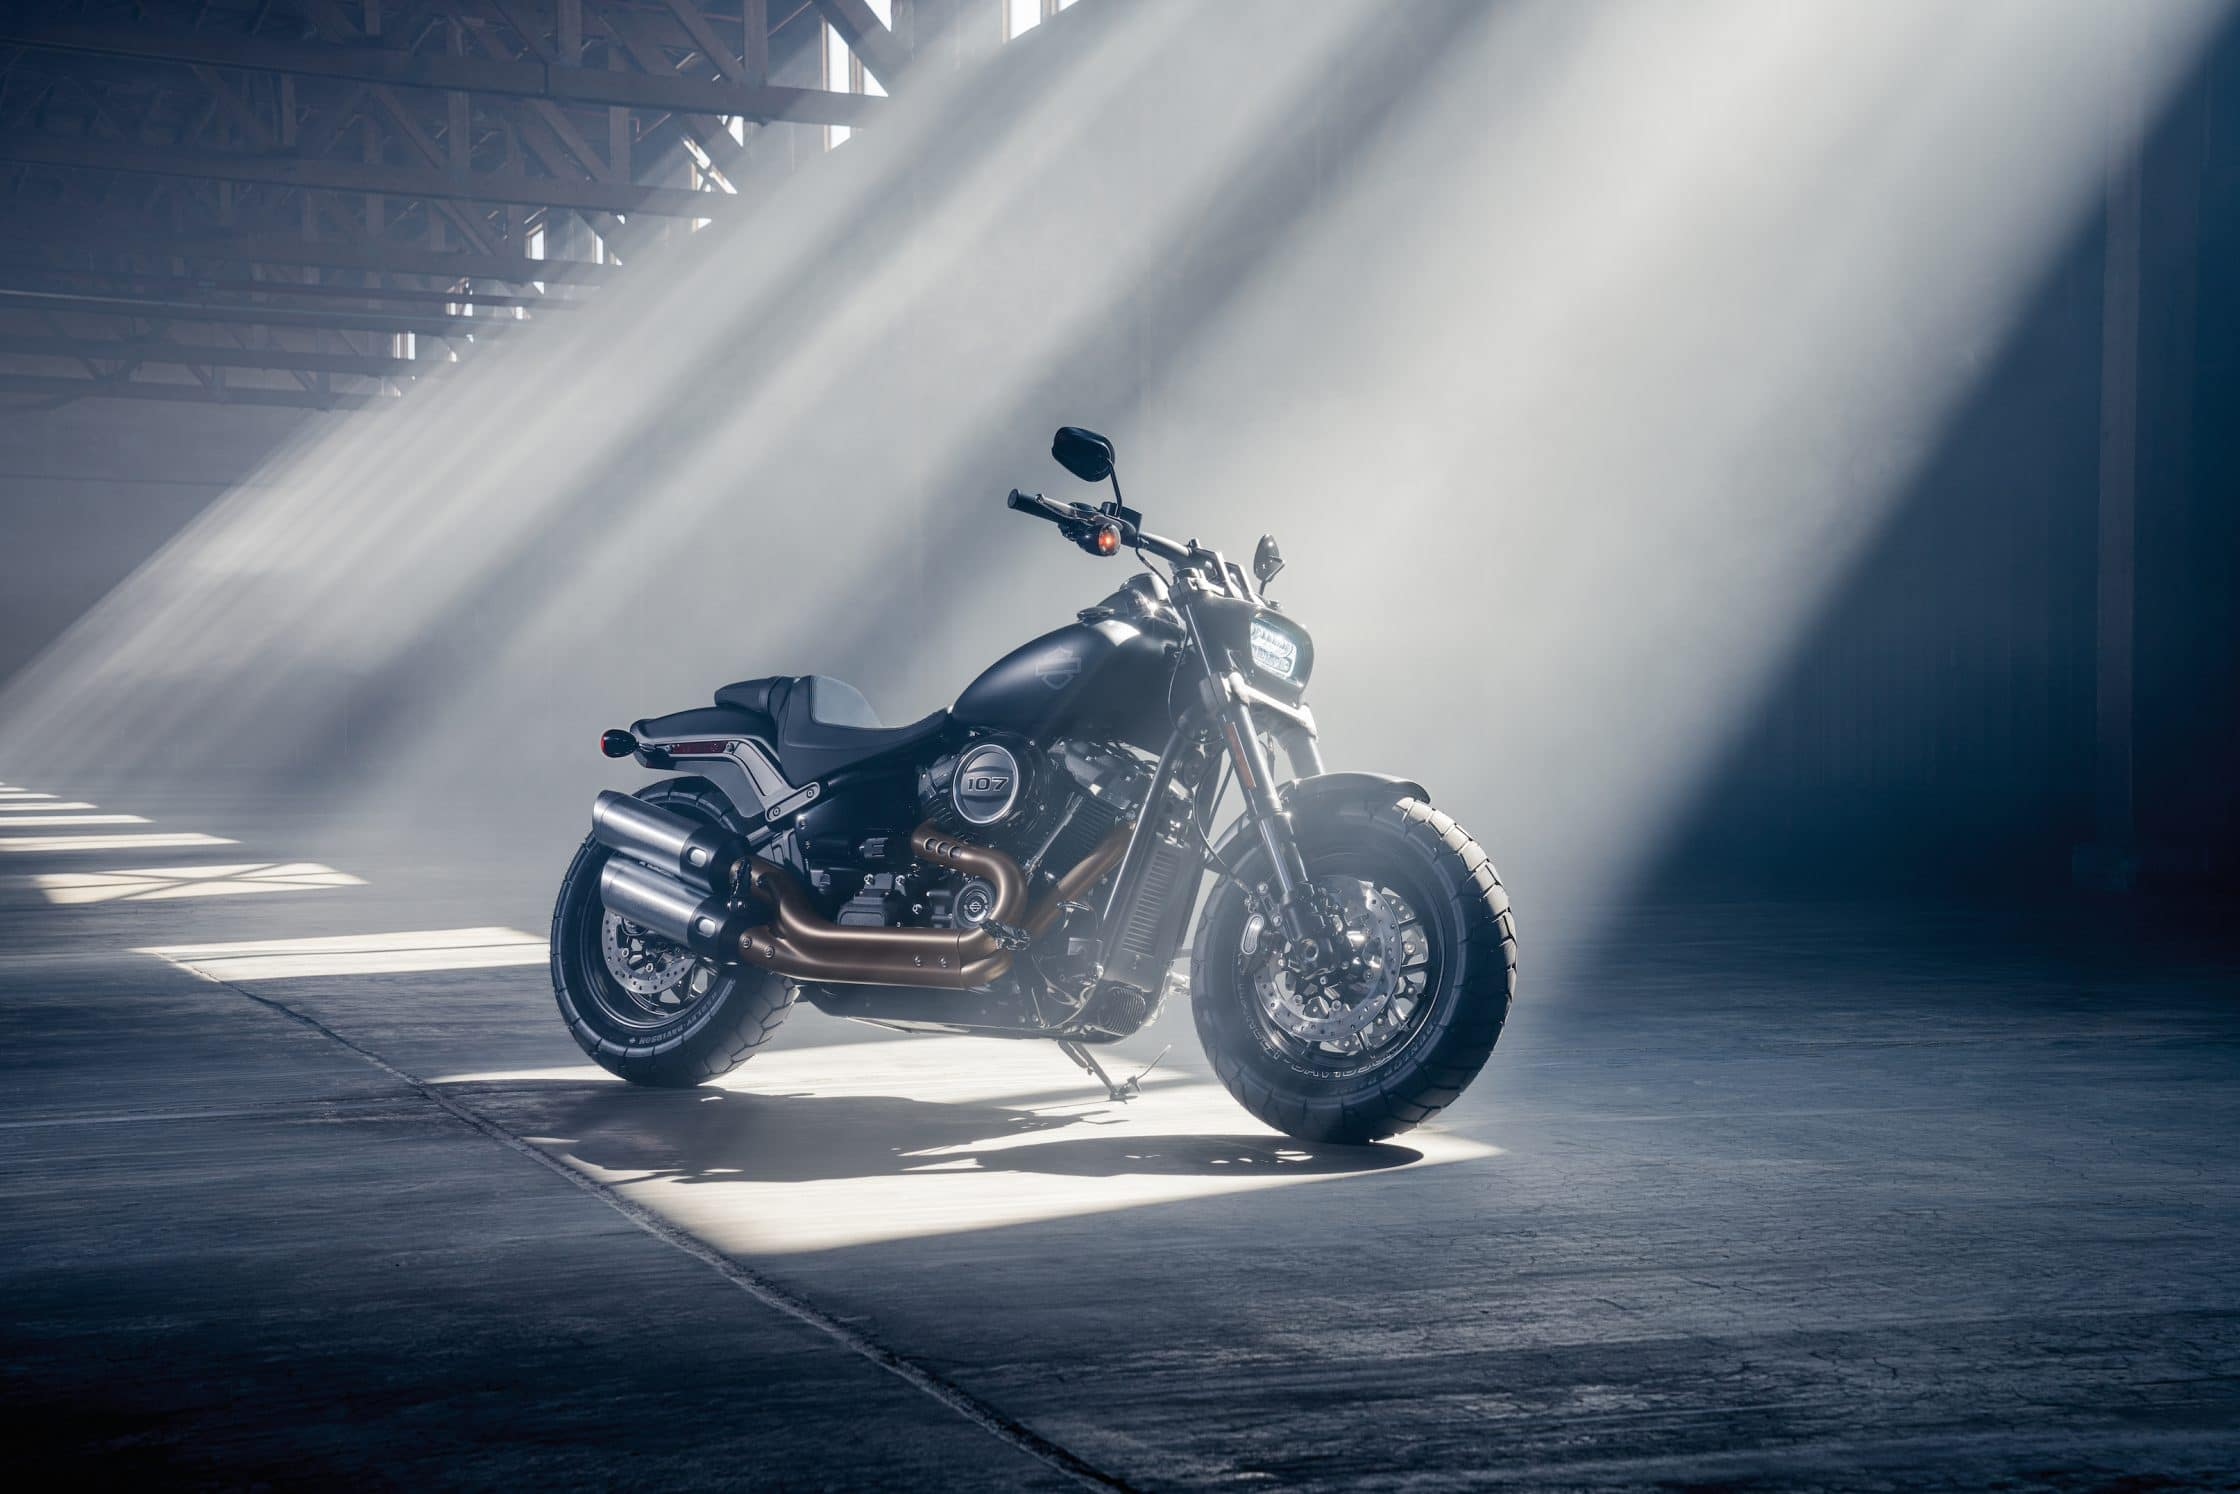 b197f605 Born in the USA: Get your motor running… The Harley Davidson brand story